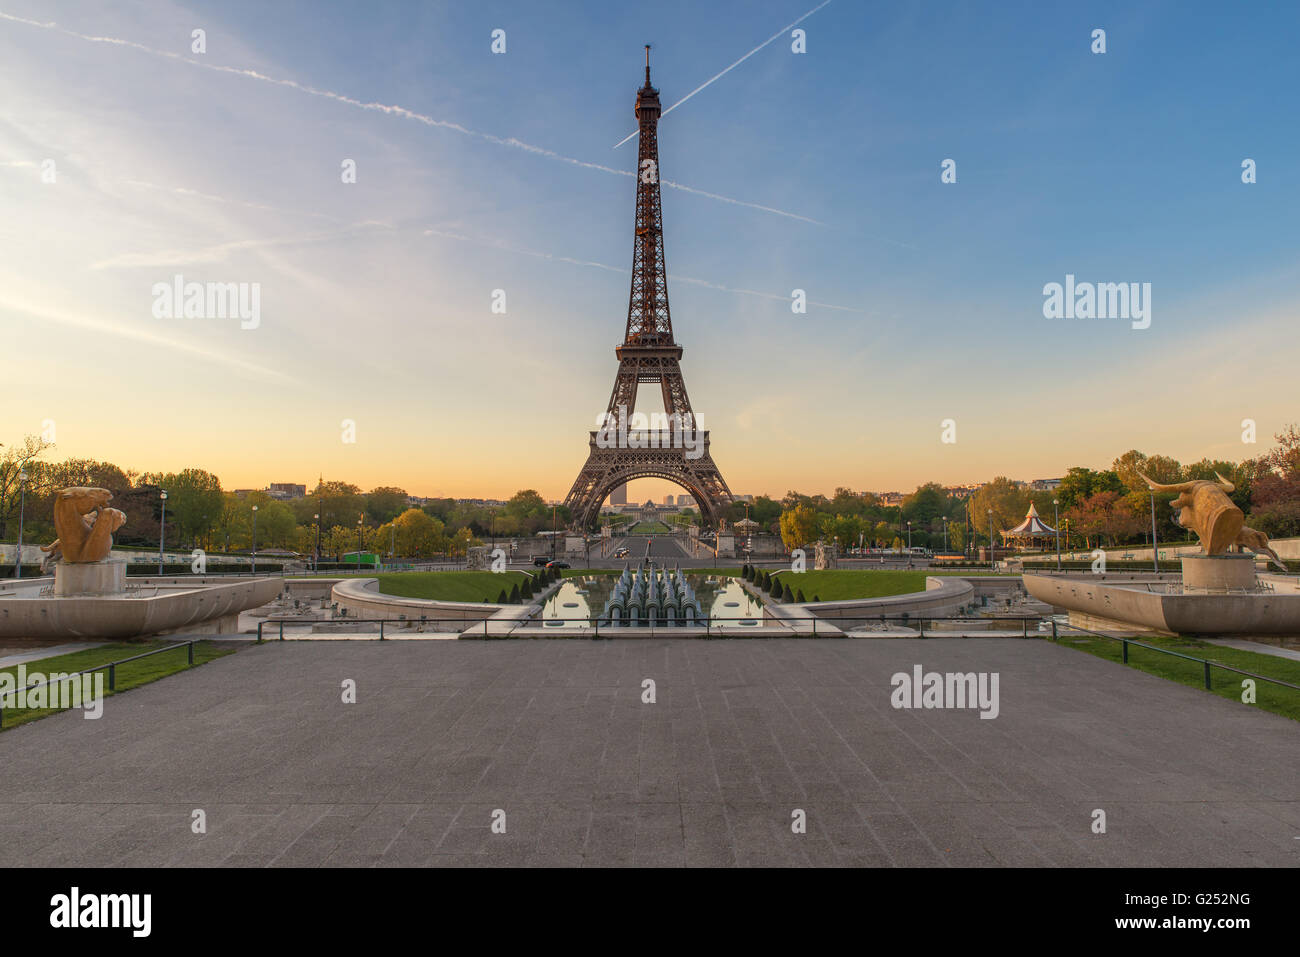 Sunrise with the Eiffel Tower in Paris, France - Stock Image